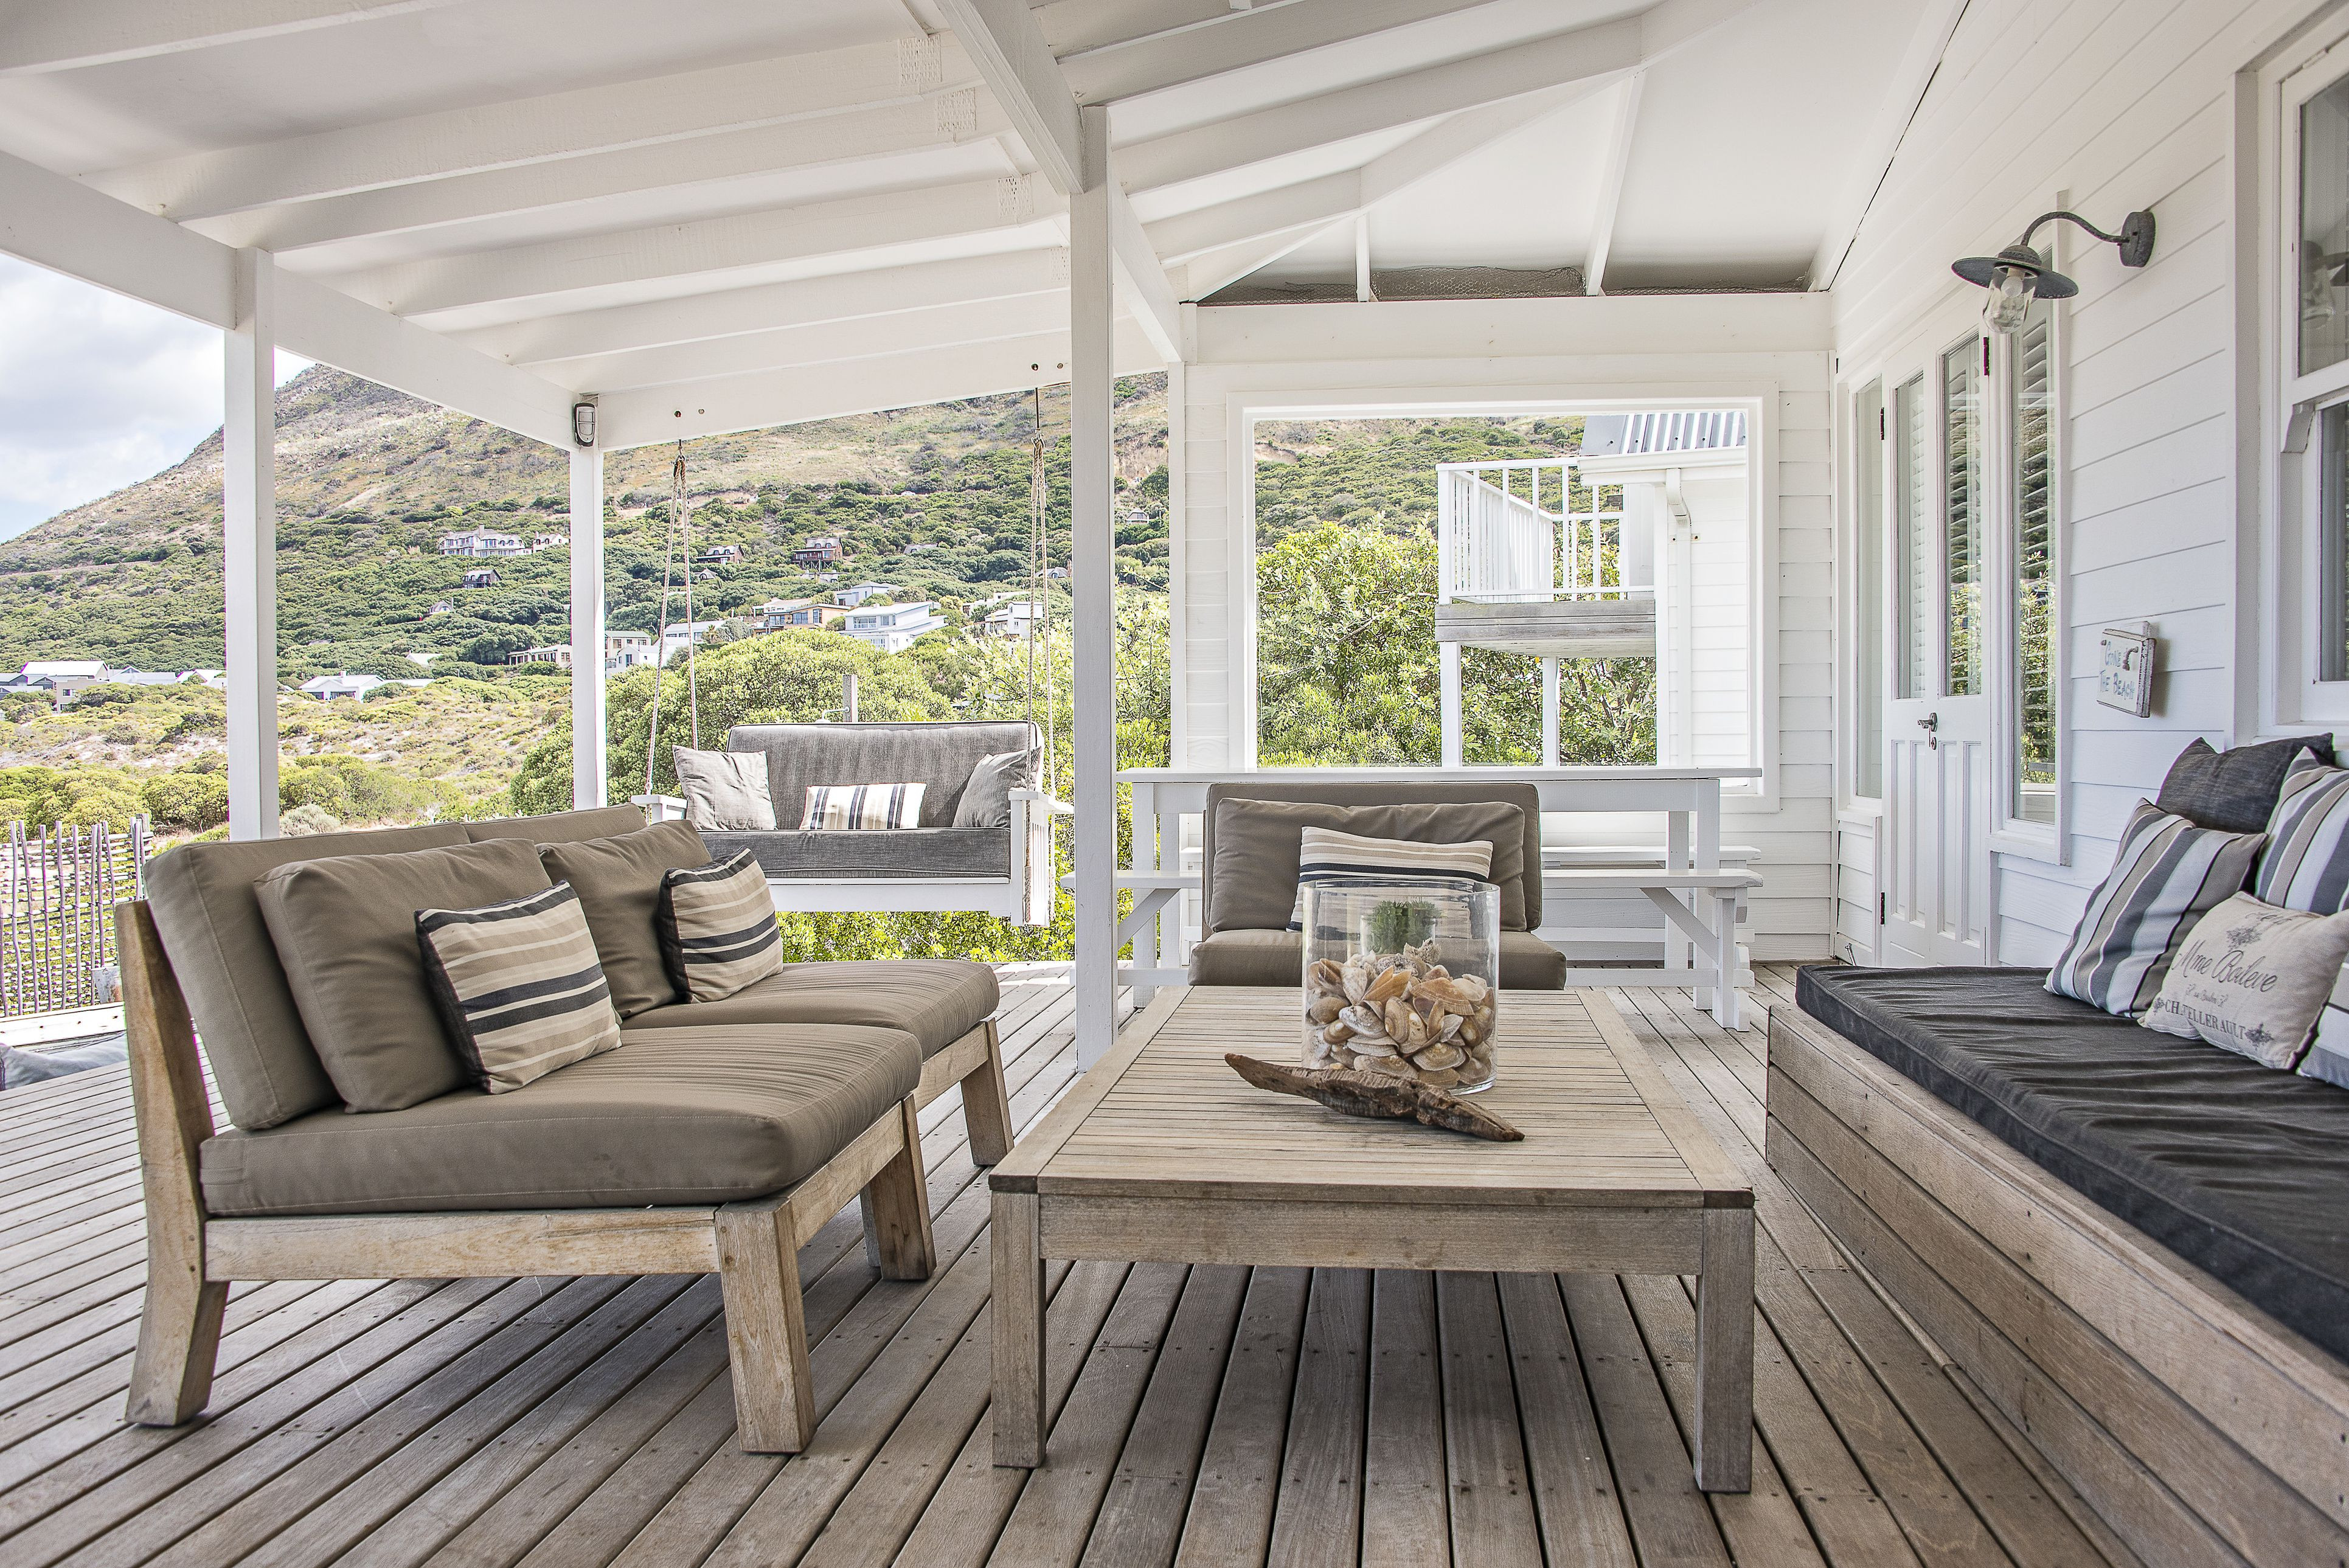 hardwood floor repair phoenix of how to clean and care for wood garden furniture within wooden terrace 670913853 5a806a2843a1030037ee99d7